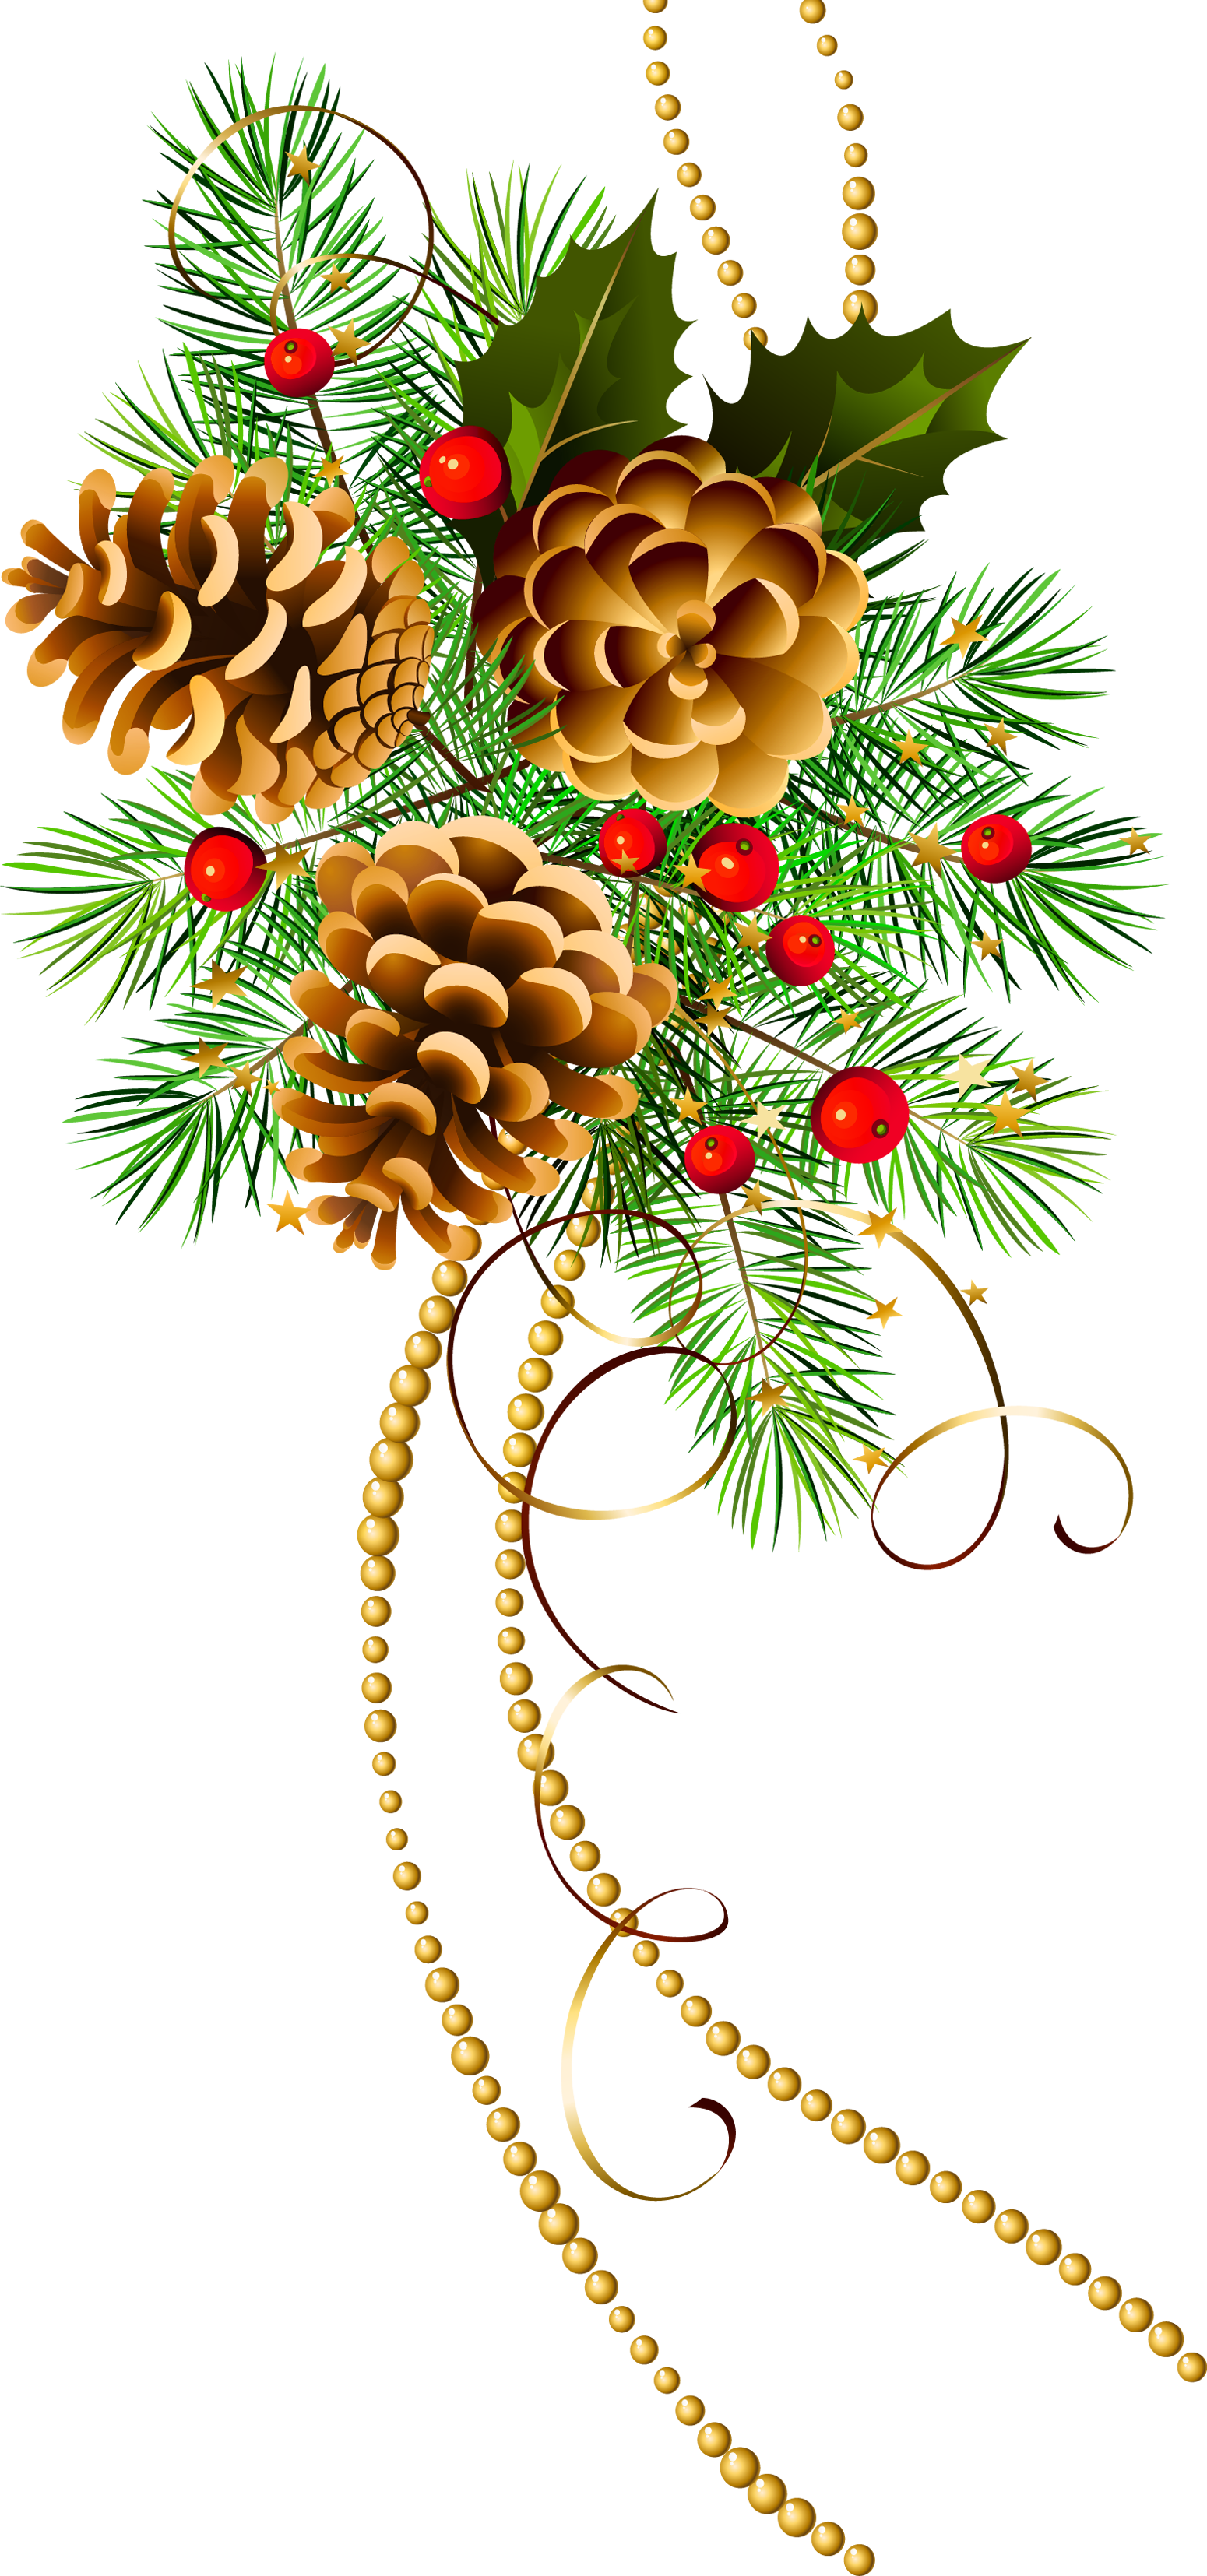 Christmas eve service clipart clip free download Pine Cone Clipart Holiday Greenery Free collection | Download and ... clip free download